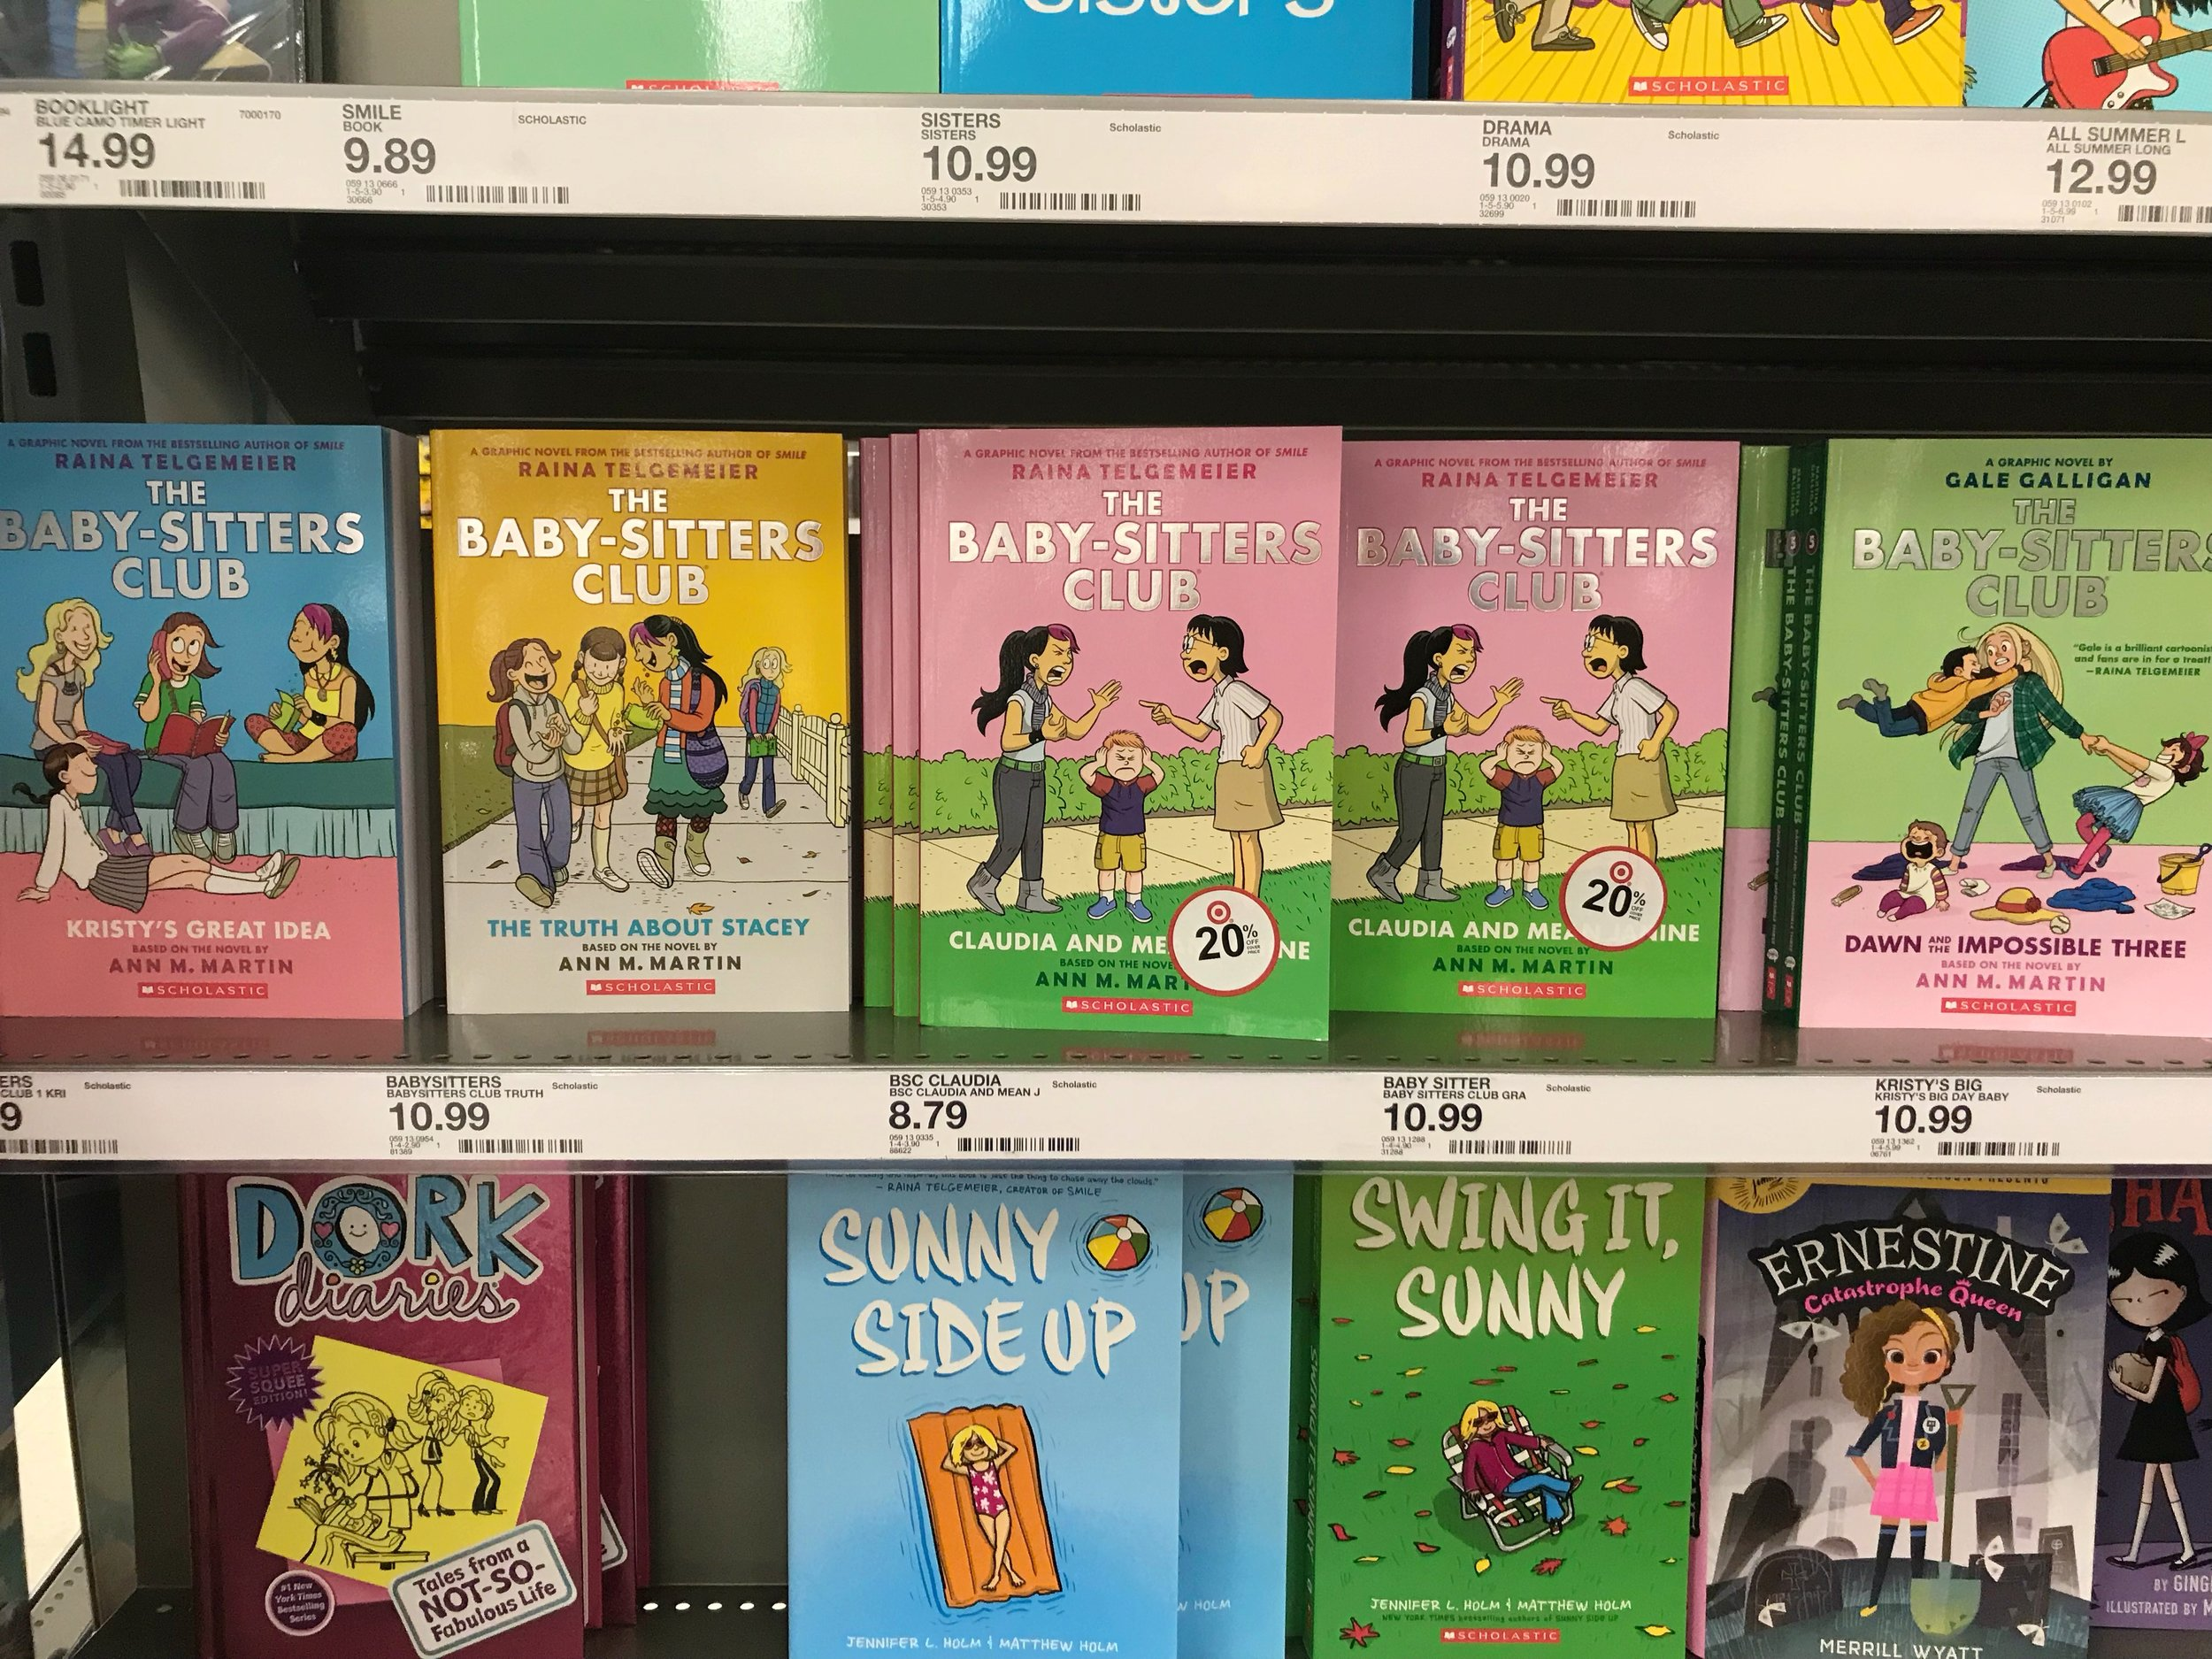 Seeing  The Baby-sitters Club  books at Target made me so happy! Yay that another generation will get to befriend these girls like I did!